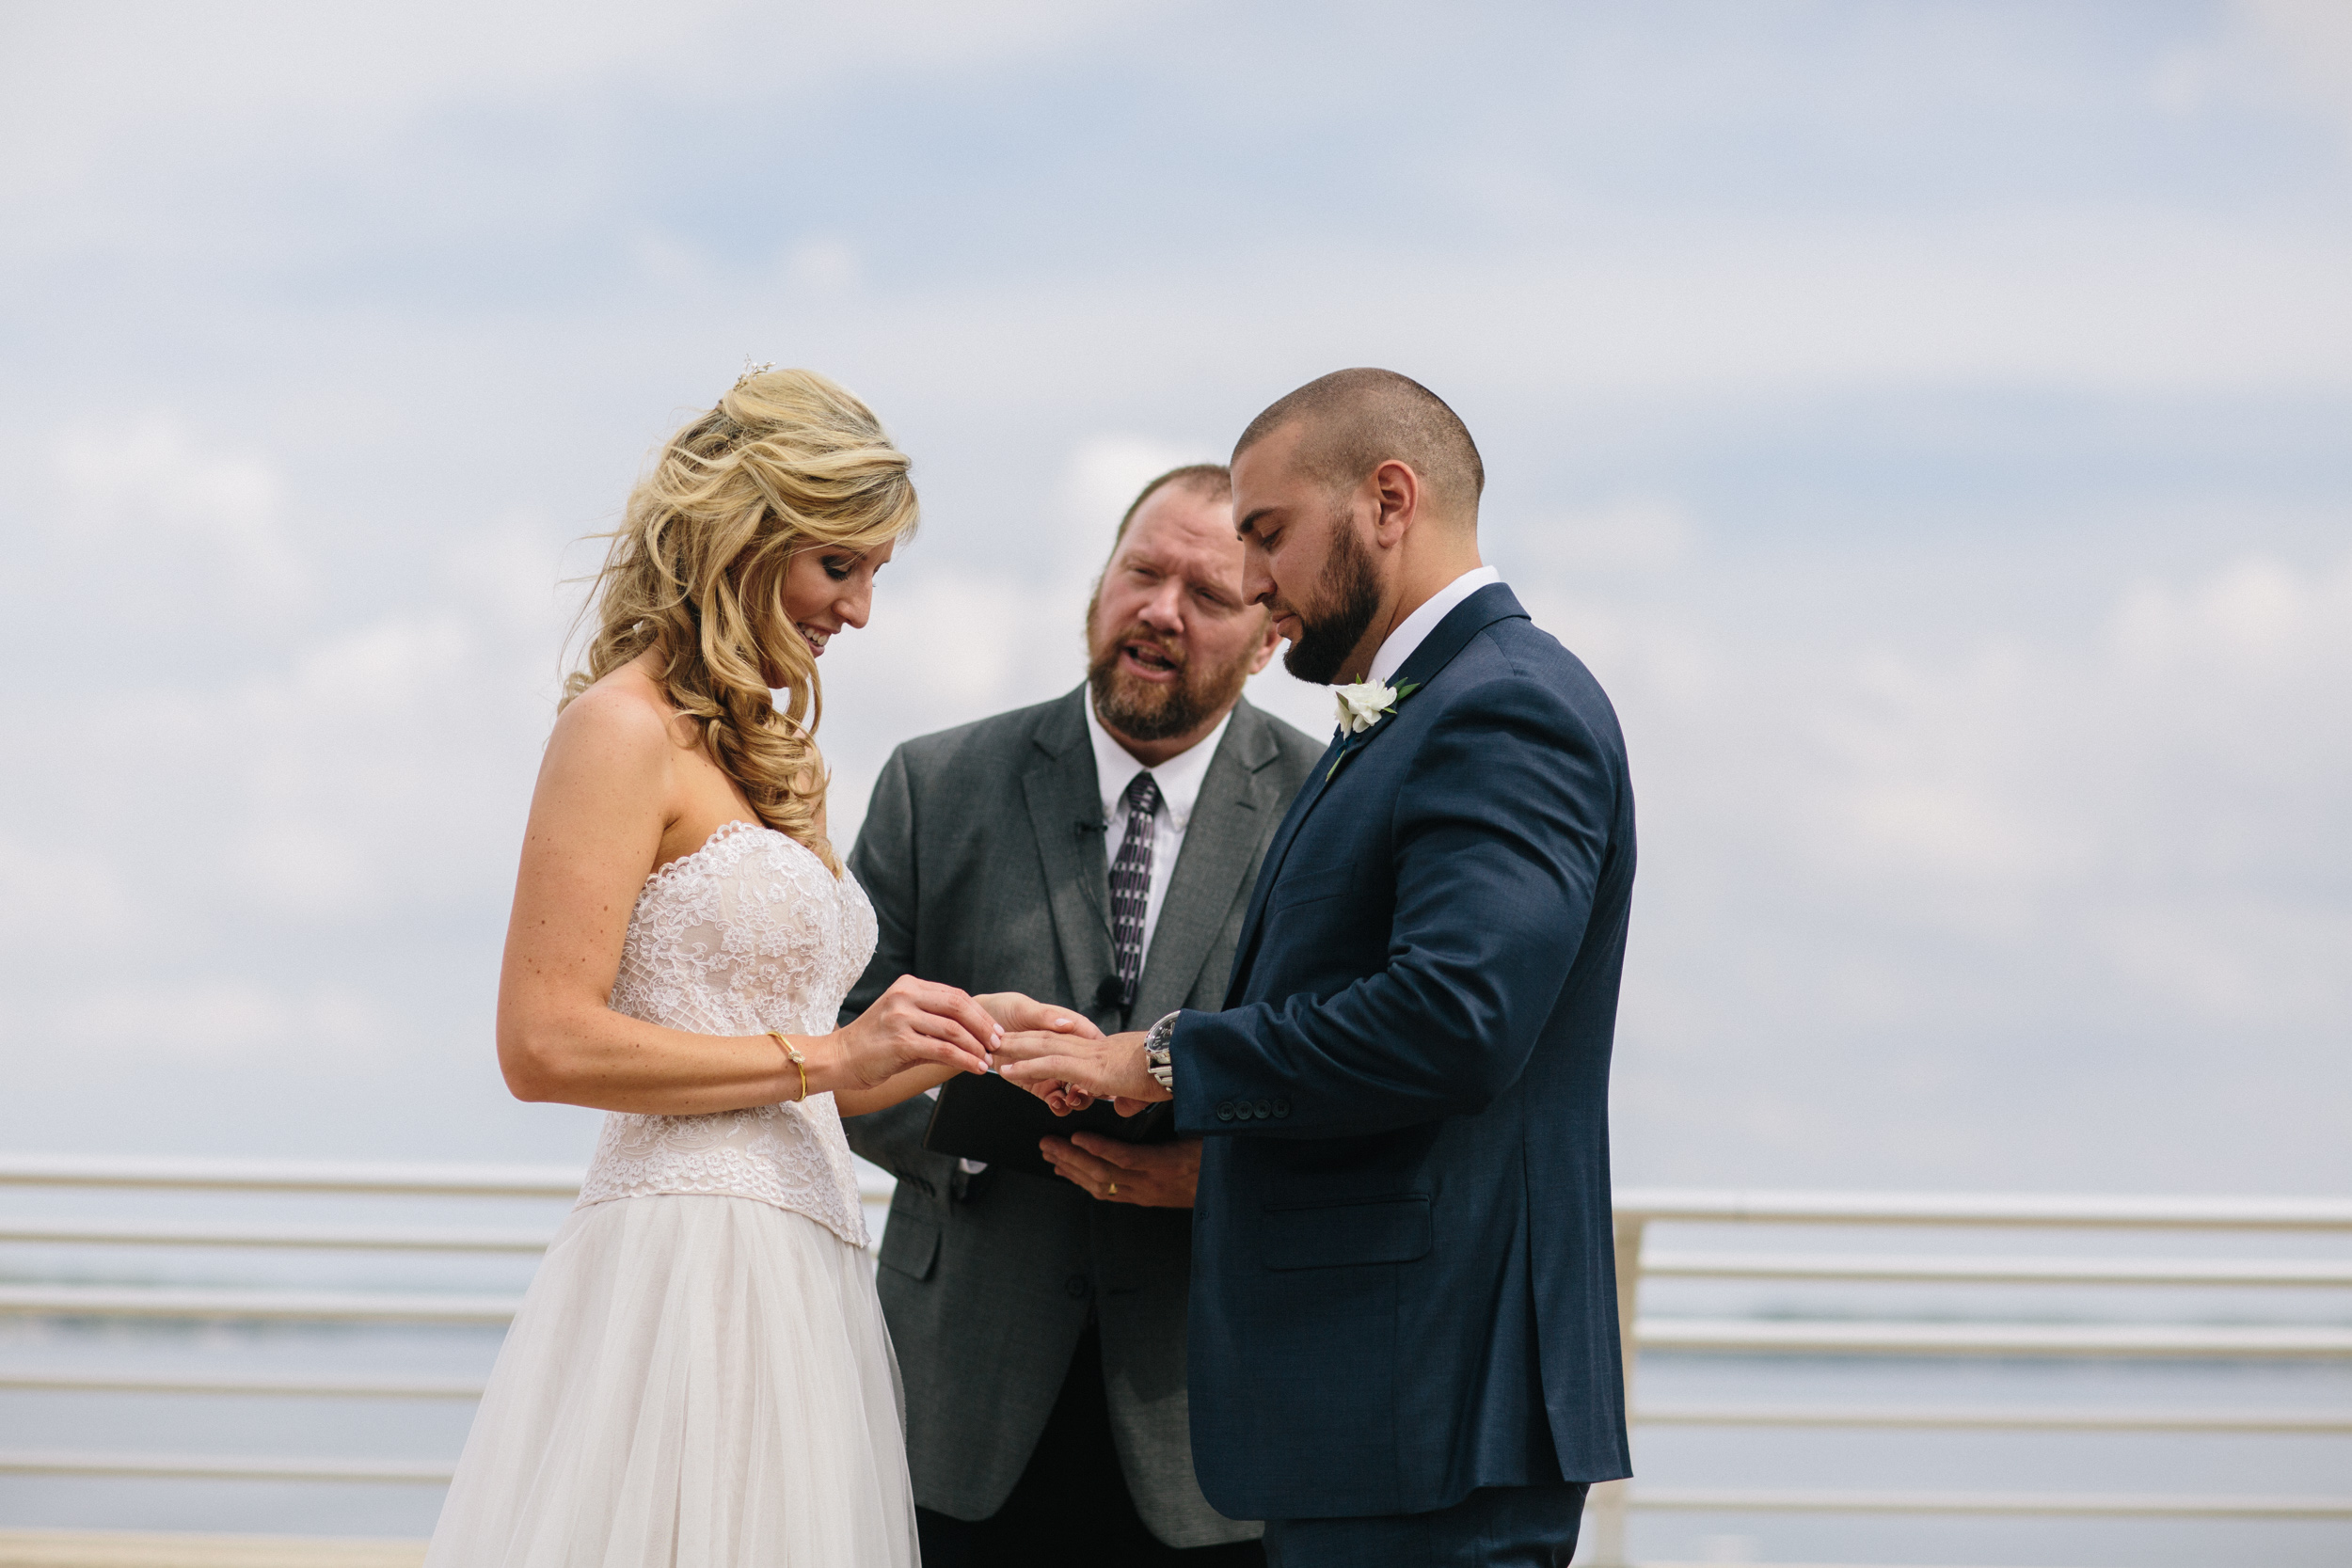 5-27-2017 Lindsay and Eric wedding photography by Brian Milo-126.jpg